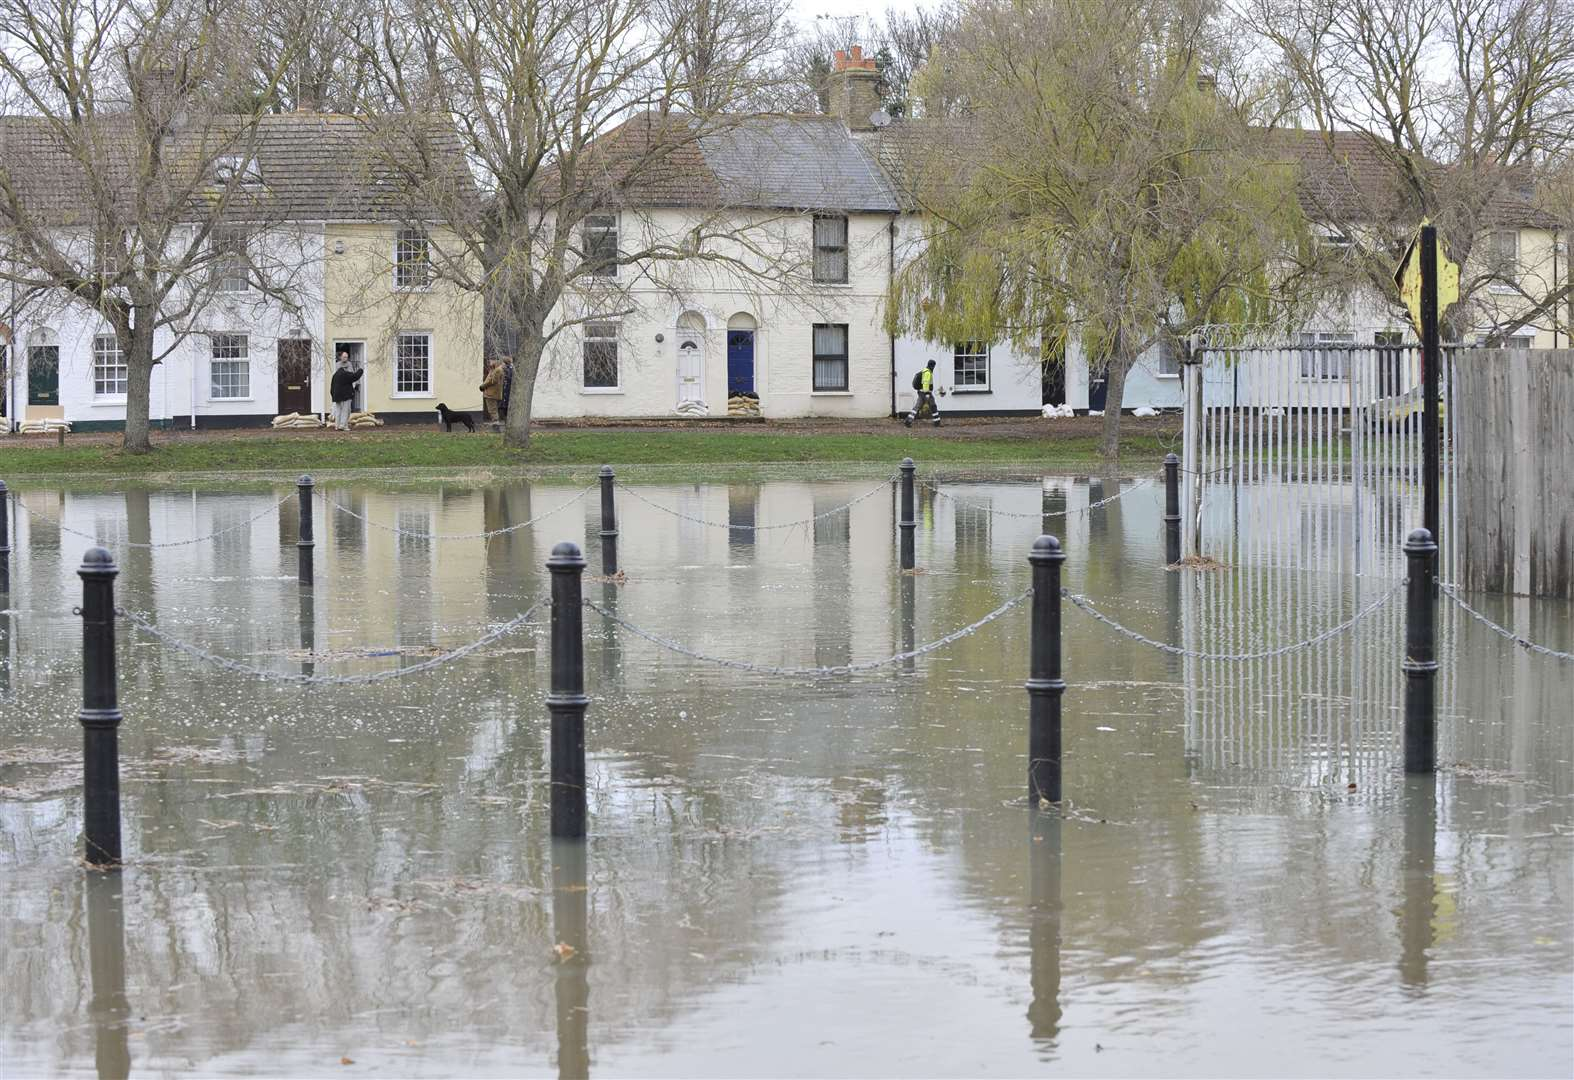 Flood defences to be strengthened